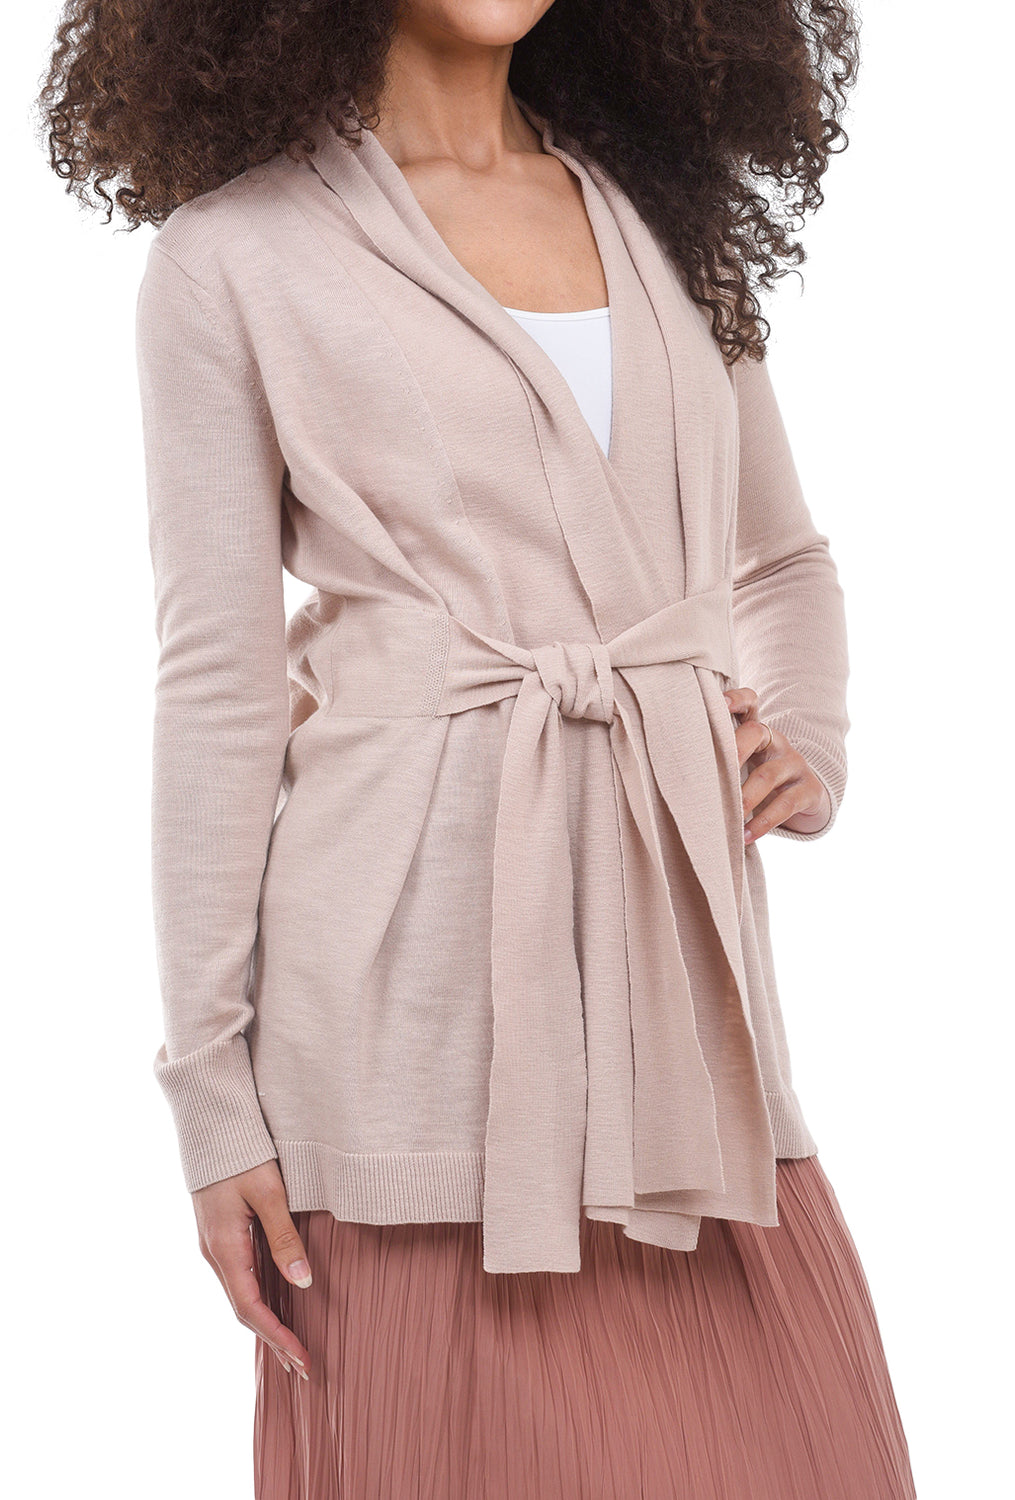 Margaret O'Leary Knits Tie-Front Duster, Shell